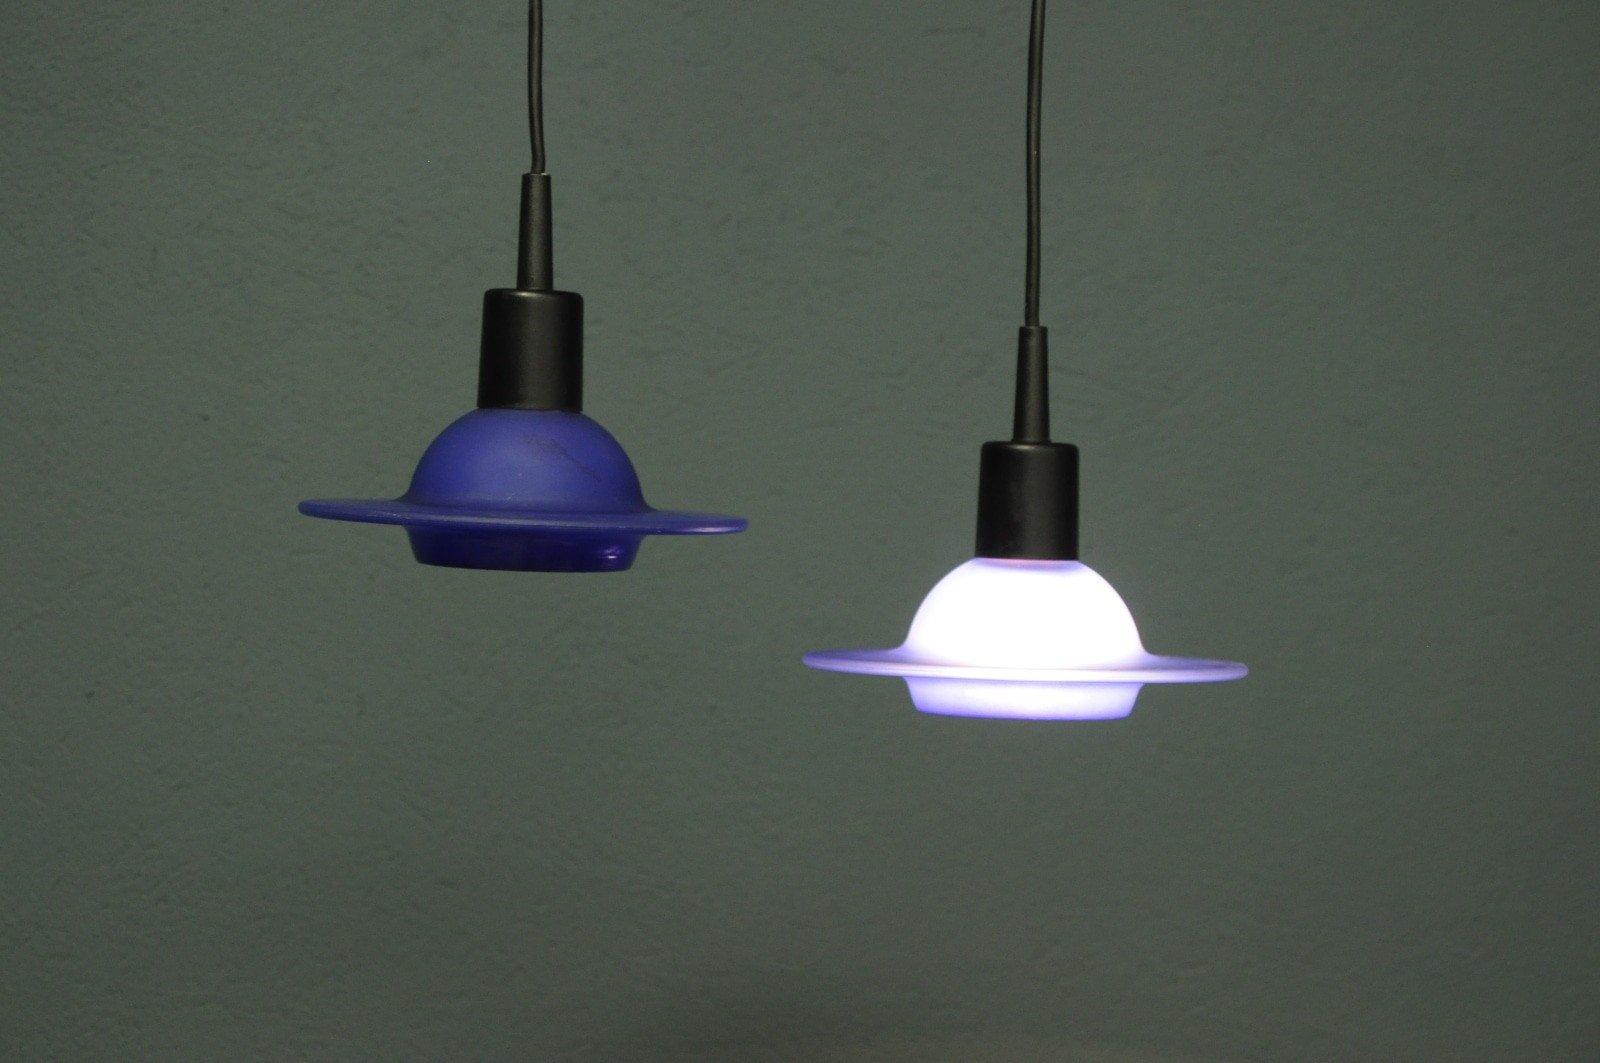 Para lamp, Design Light A/B, Dania, lata 80.